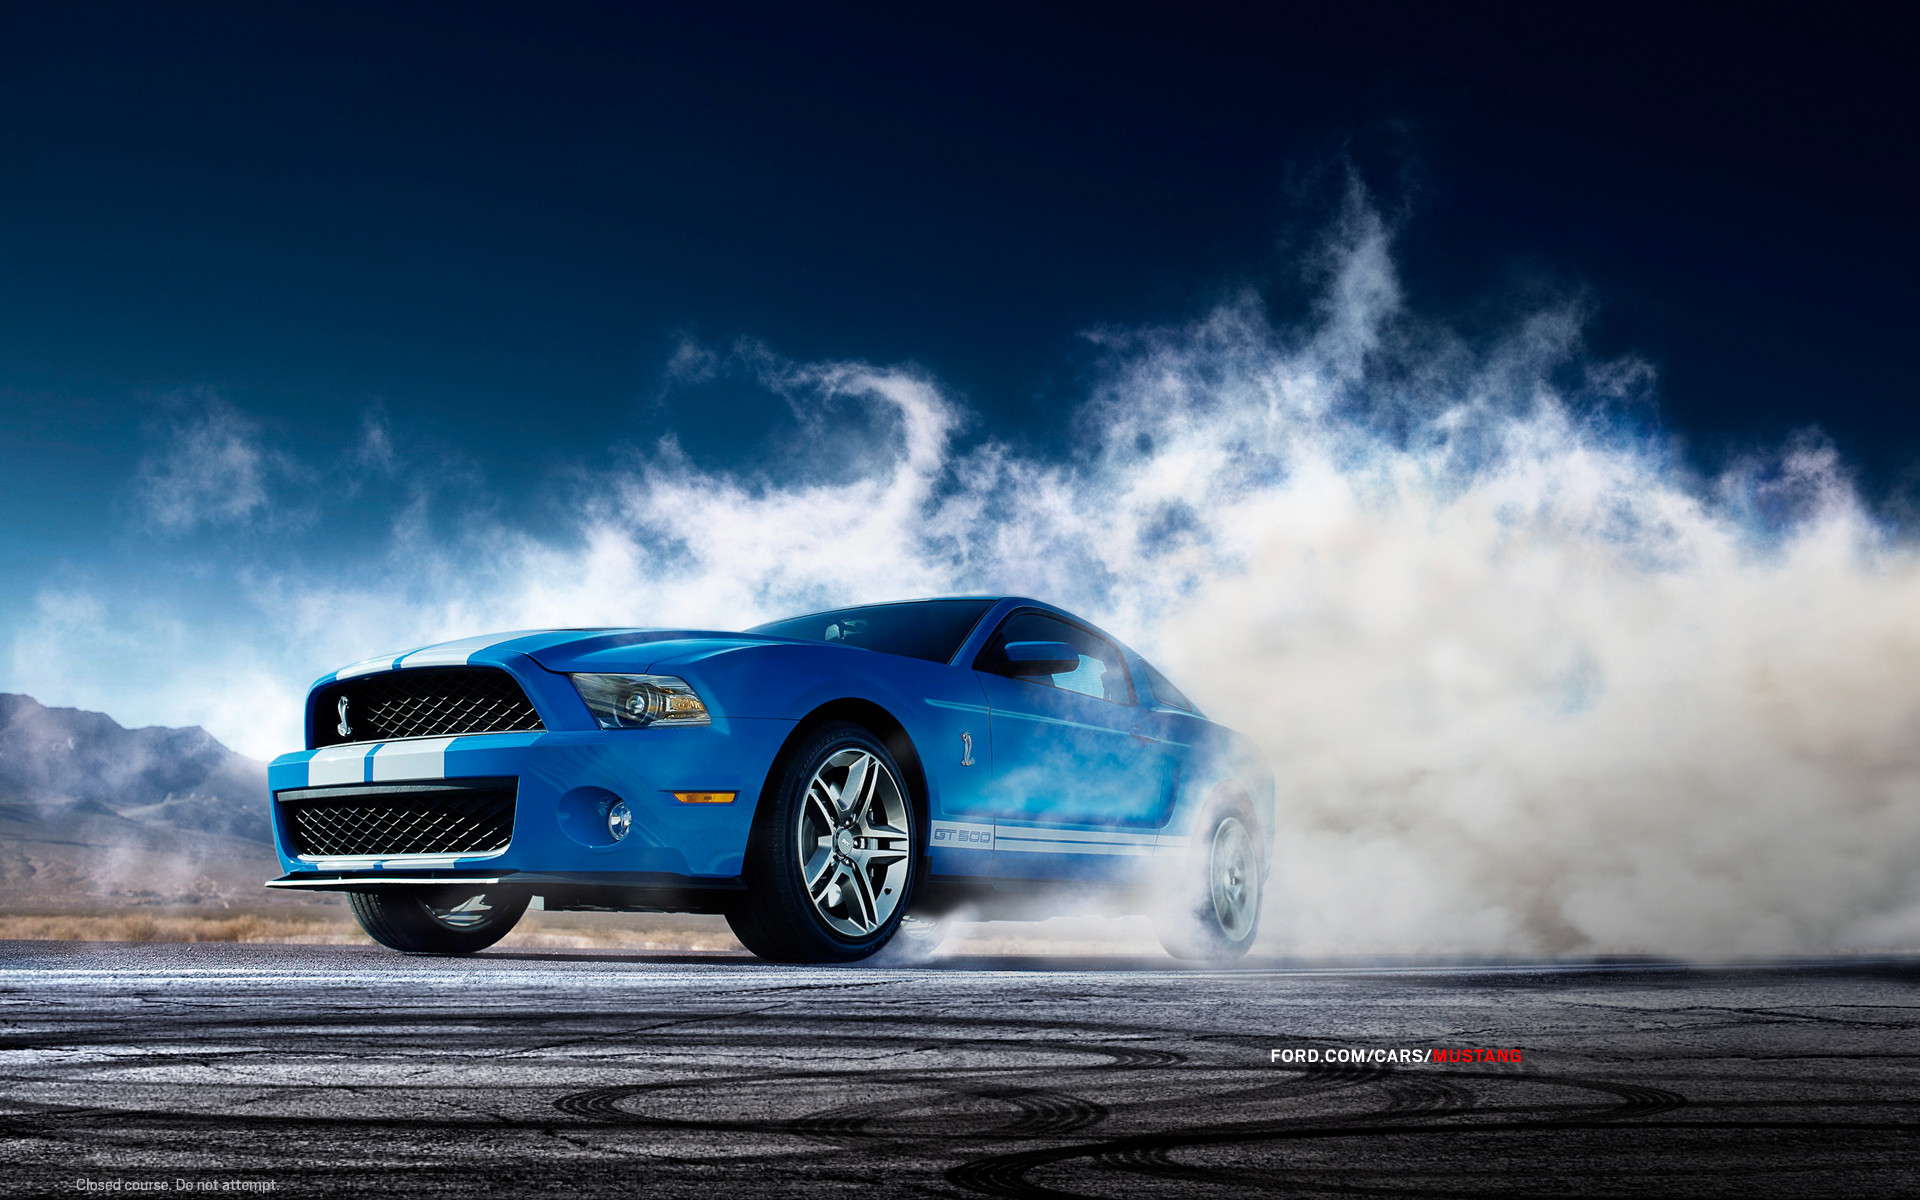 of The New Ford Mustang Wallpapers Free Download HD Wallpapers